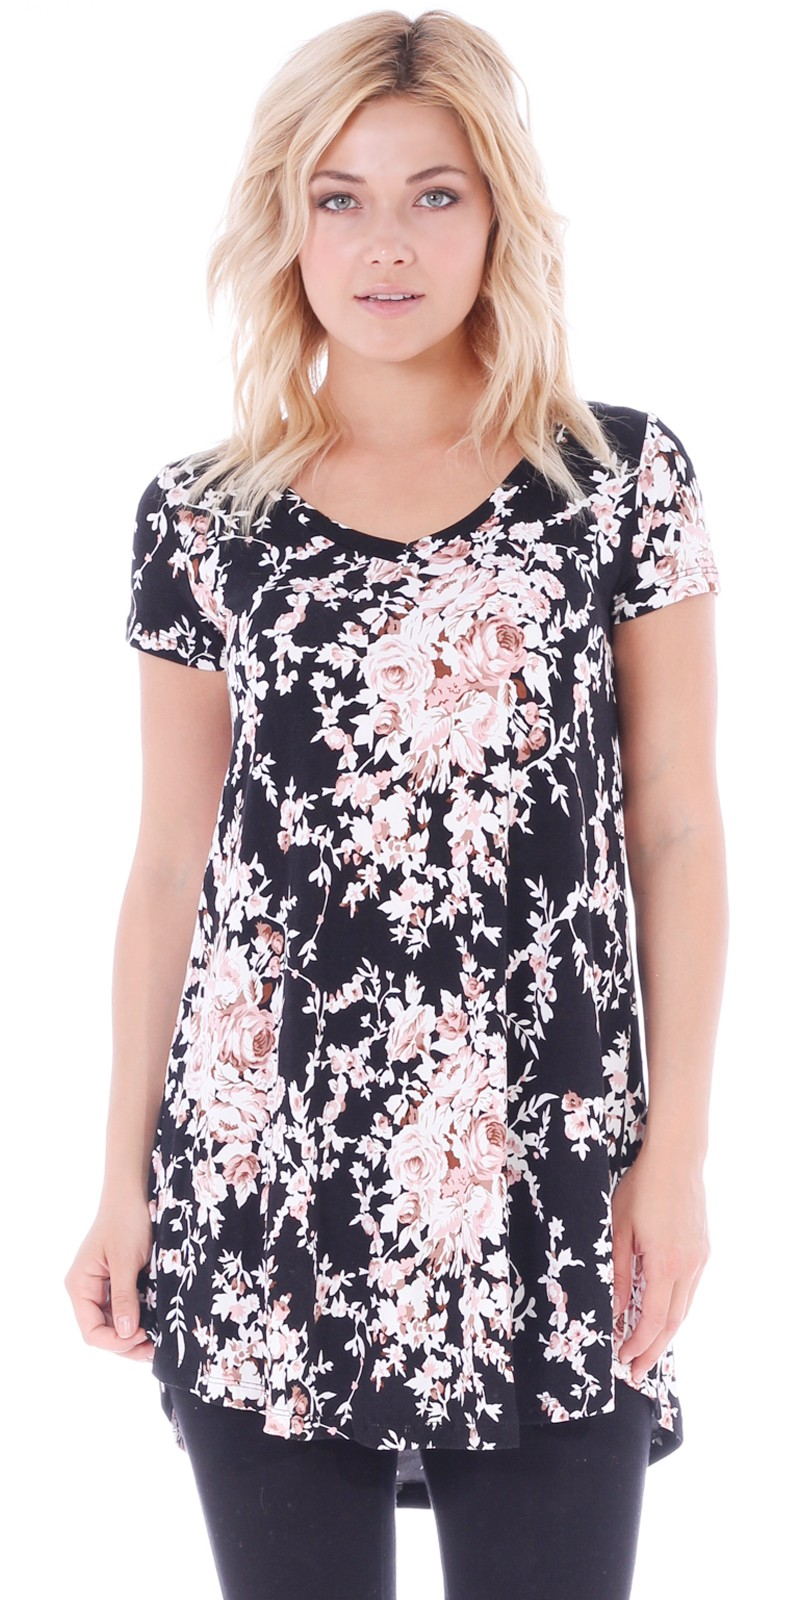 Women's Tunic Top Dress Short Sleeve - Wear With Leggings in Regular and Plus Size - Made In USA - ST57